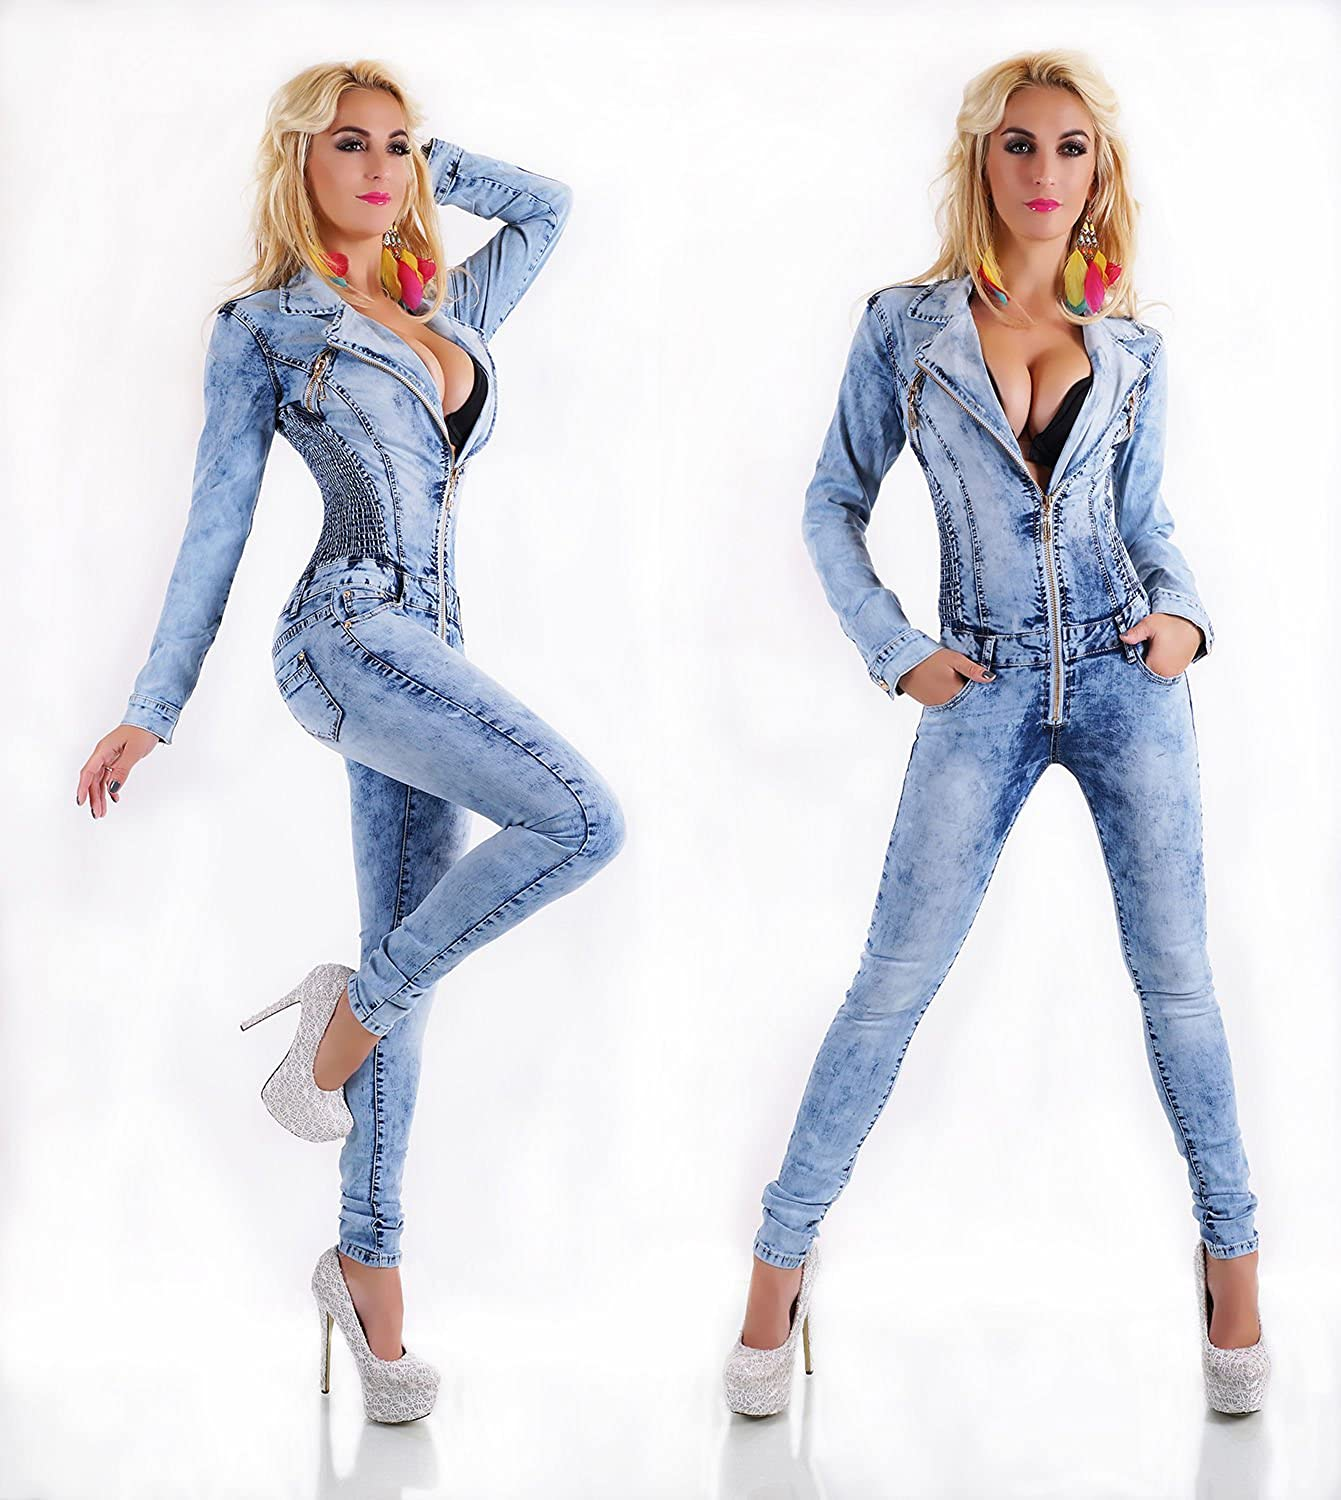 c88416be8d Miss Fusion Sexy Women Longsleeve Blue Denim Jumpsuit Ladies Overall 6 8 10  S Jeans Playsuit (S 8 36)  Amazon.co.uk  Clothing